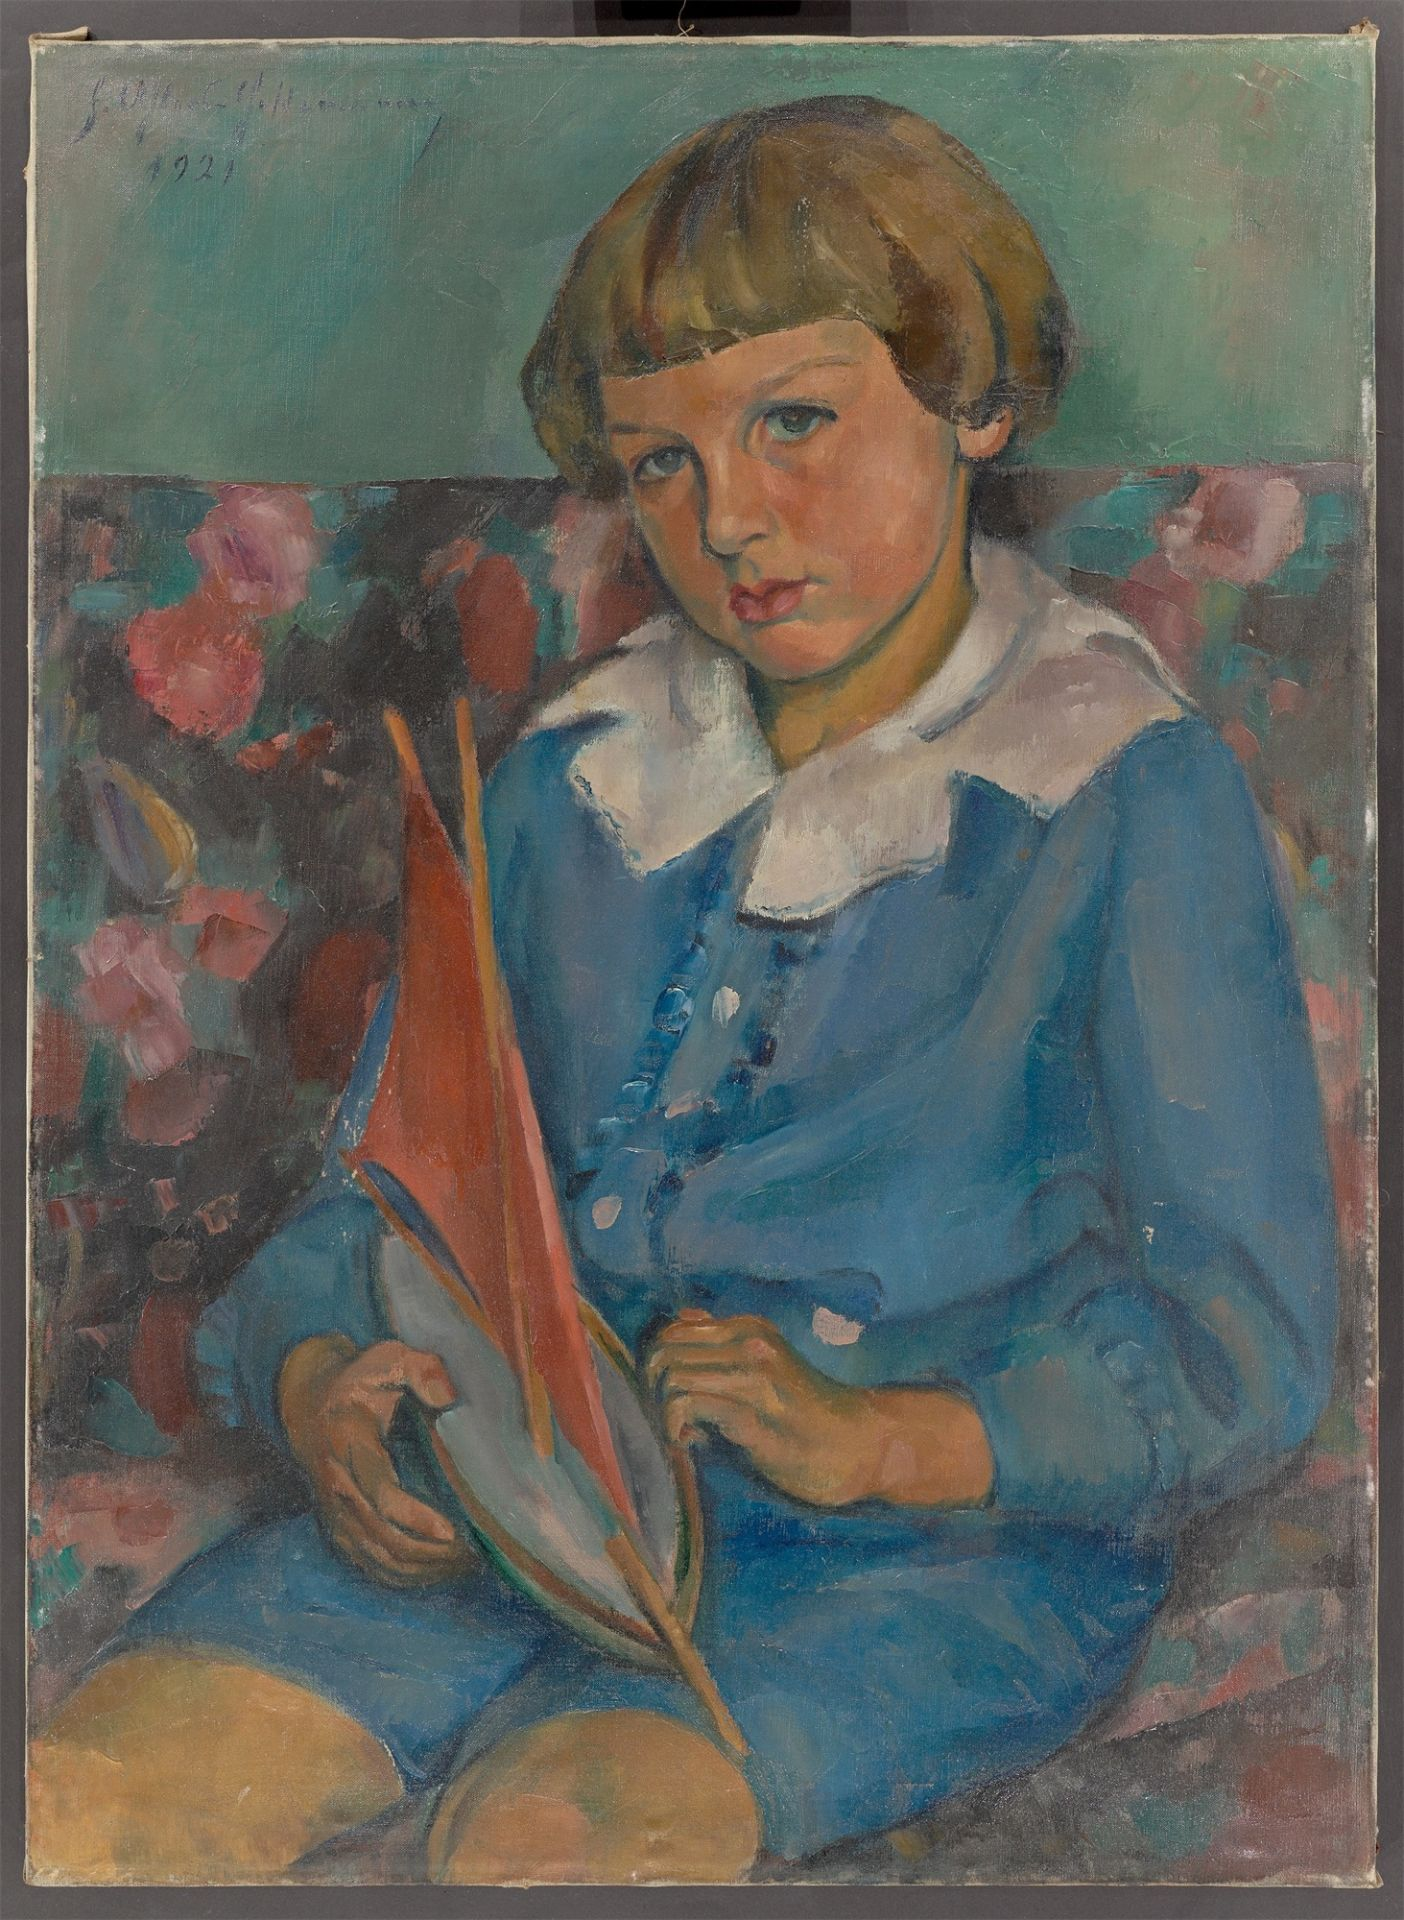 Friedrich Ahlers-Hestermann. Boy with sailing ship. 1921 - Image 2 of 4